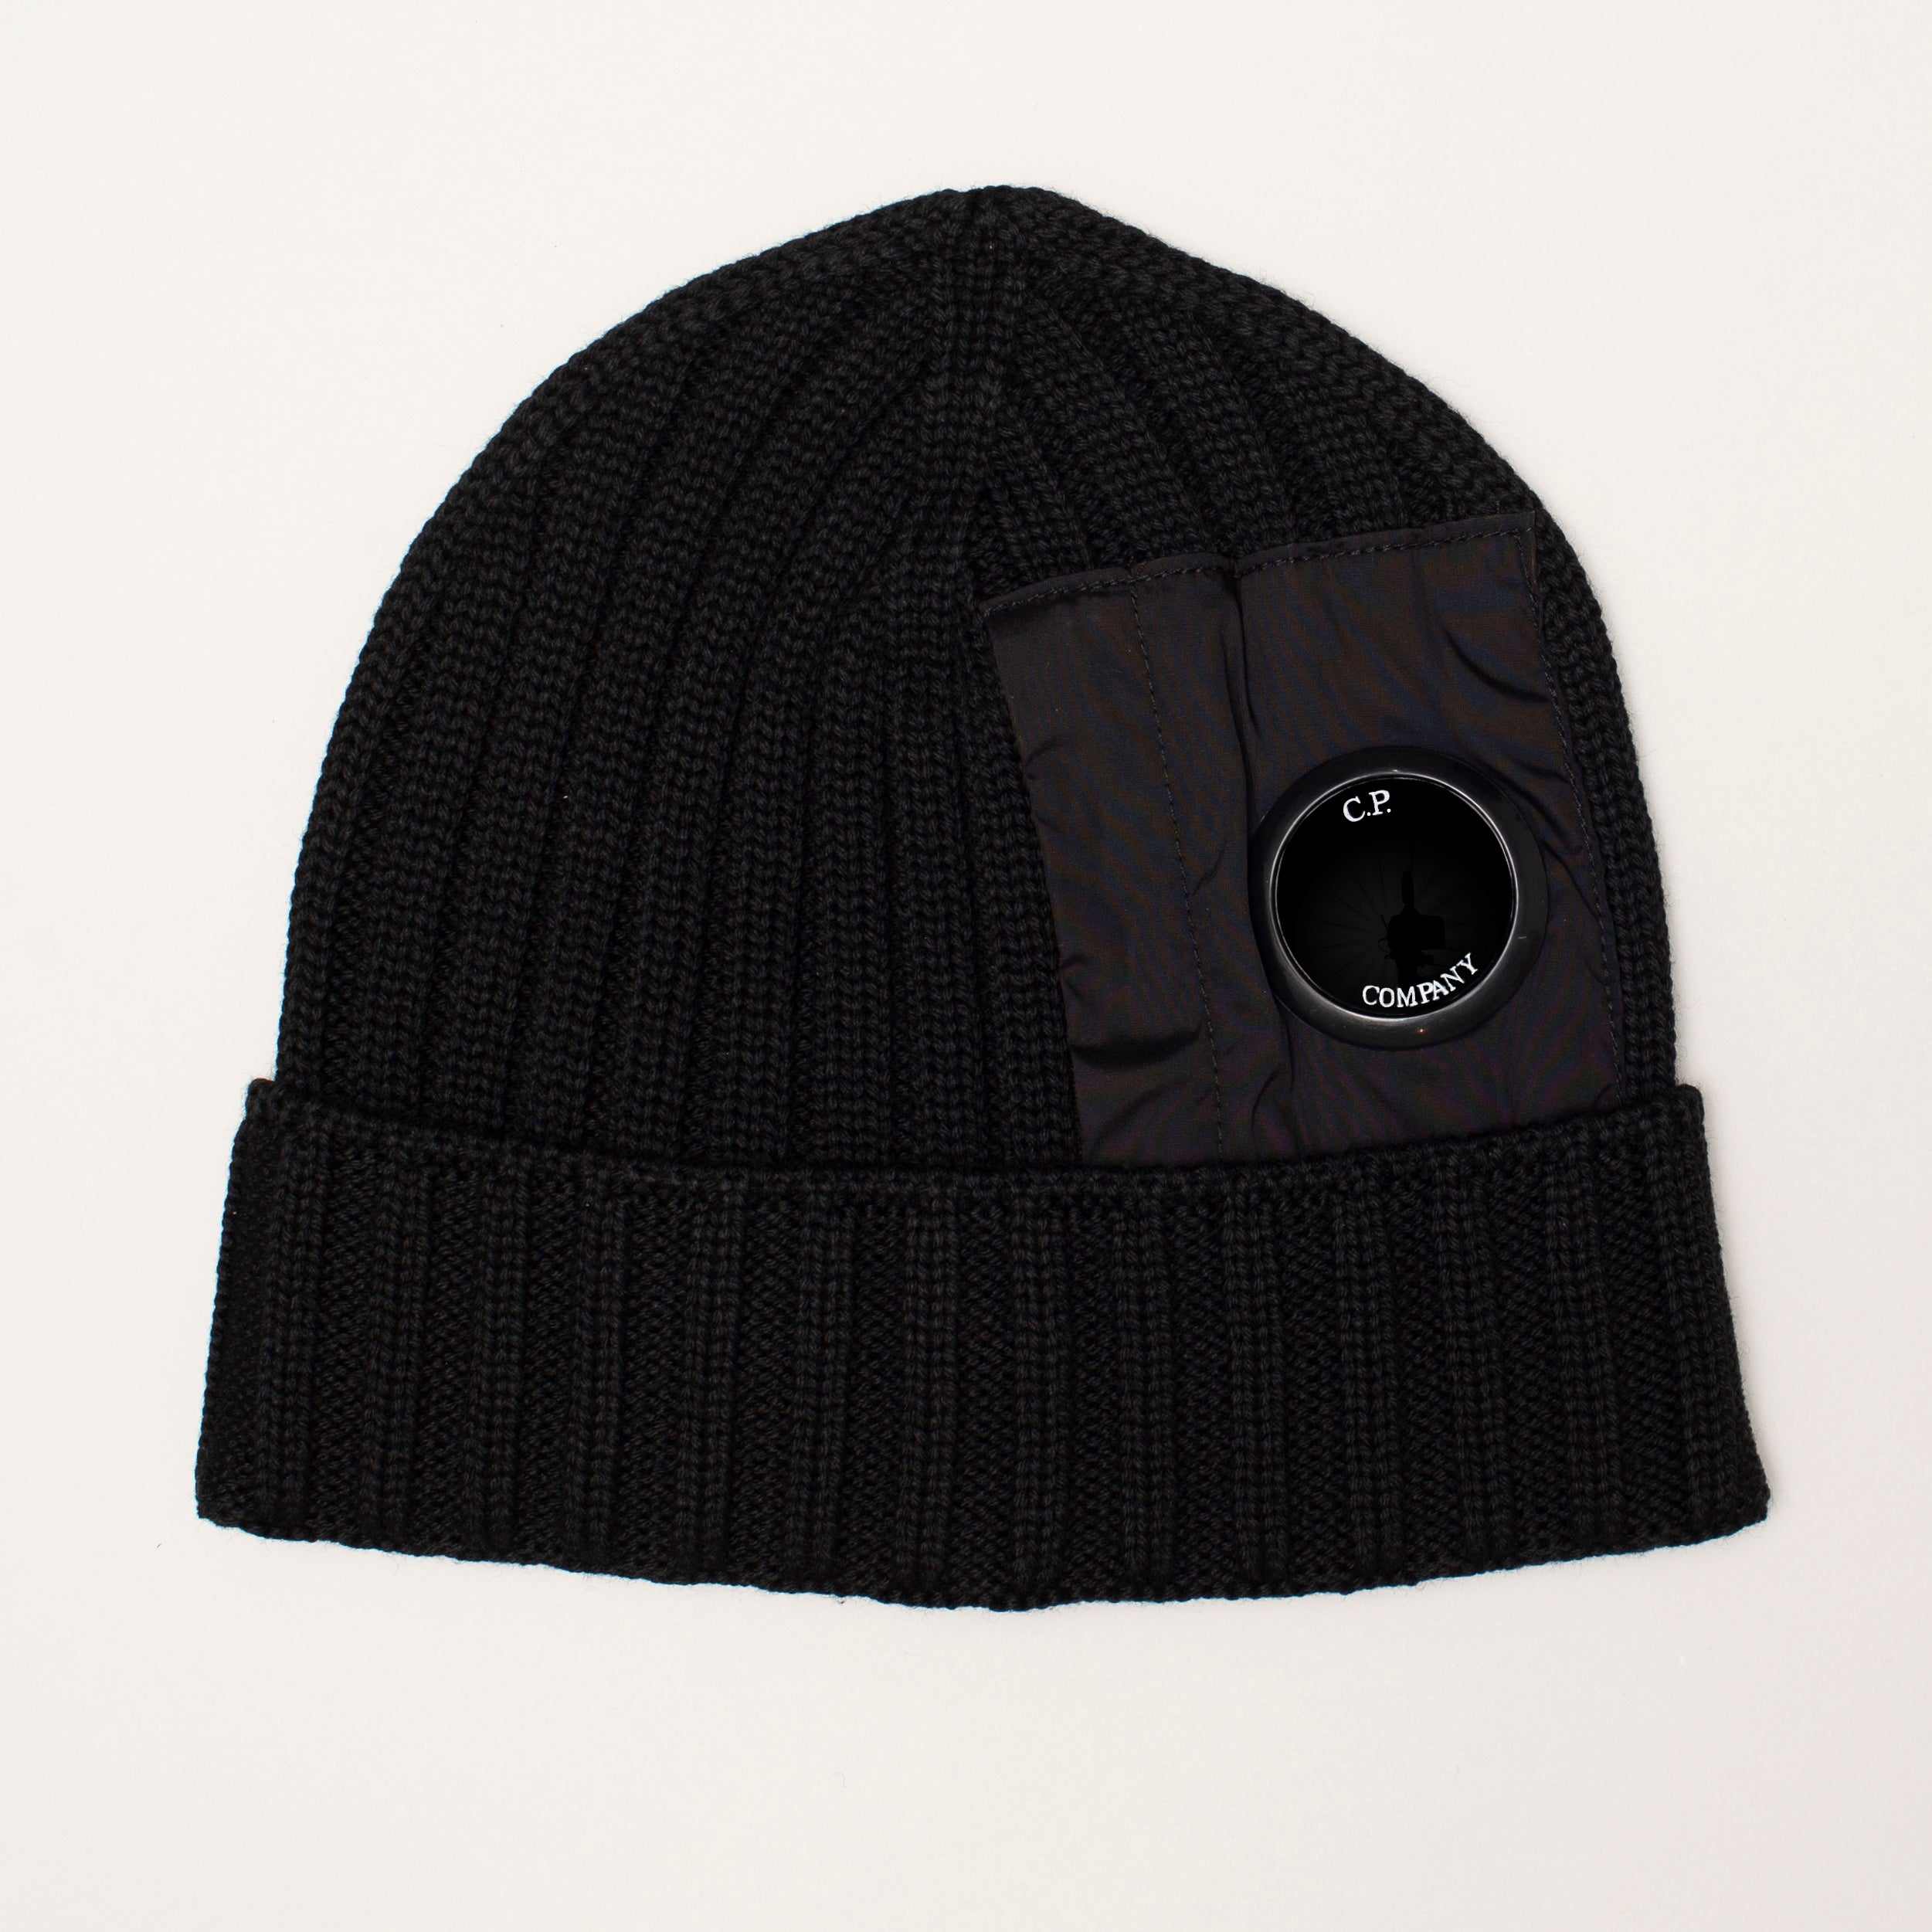 CP COMPANY MERINO WOOL MIXED LENS BEANIE BLACK